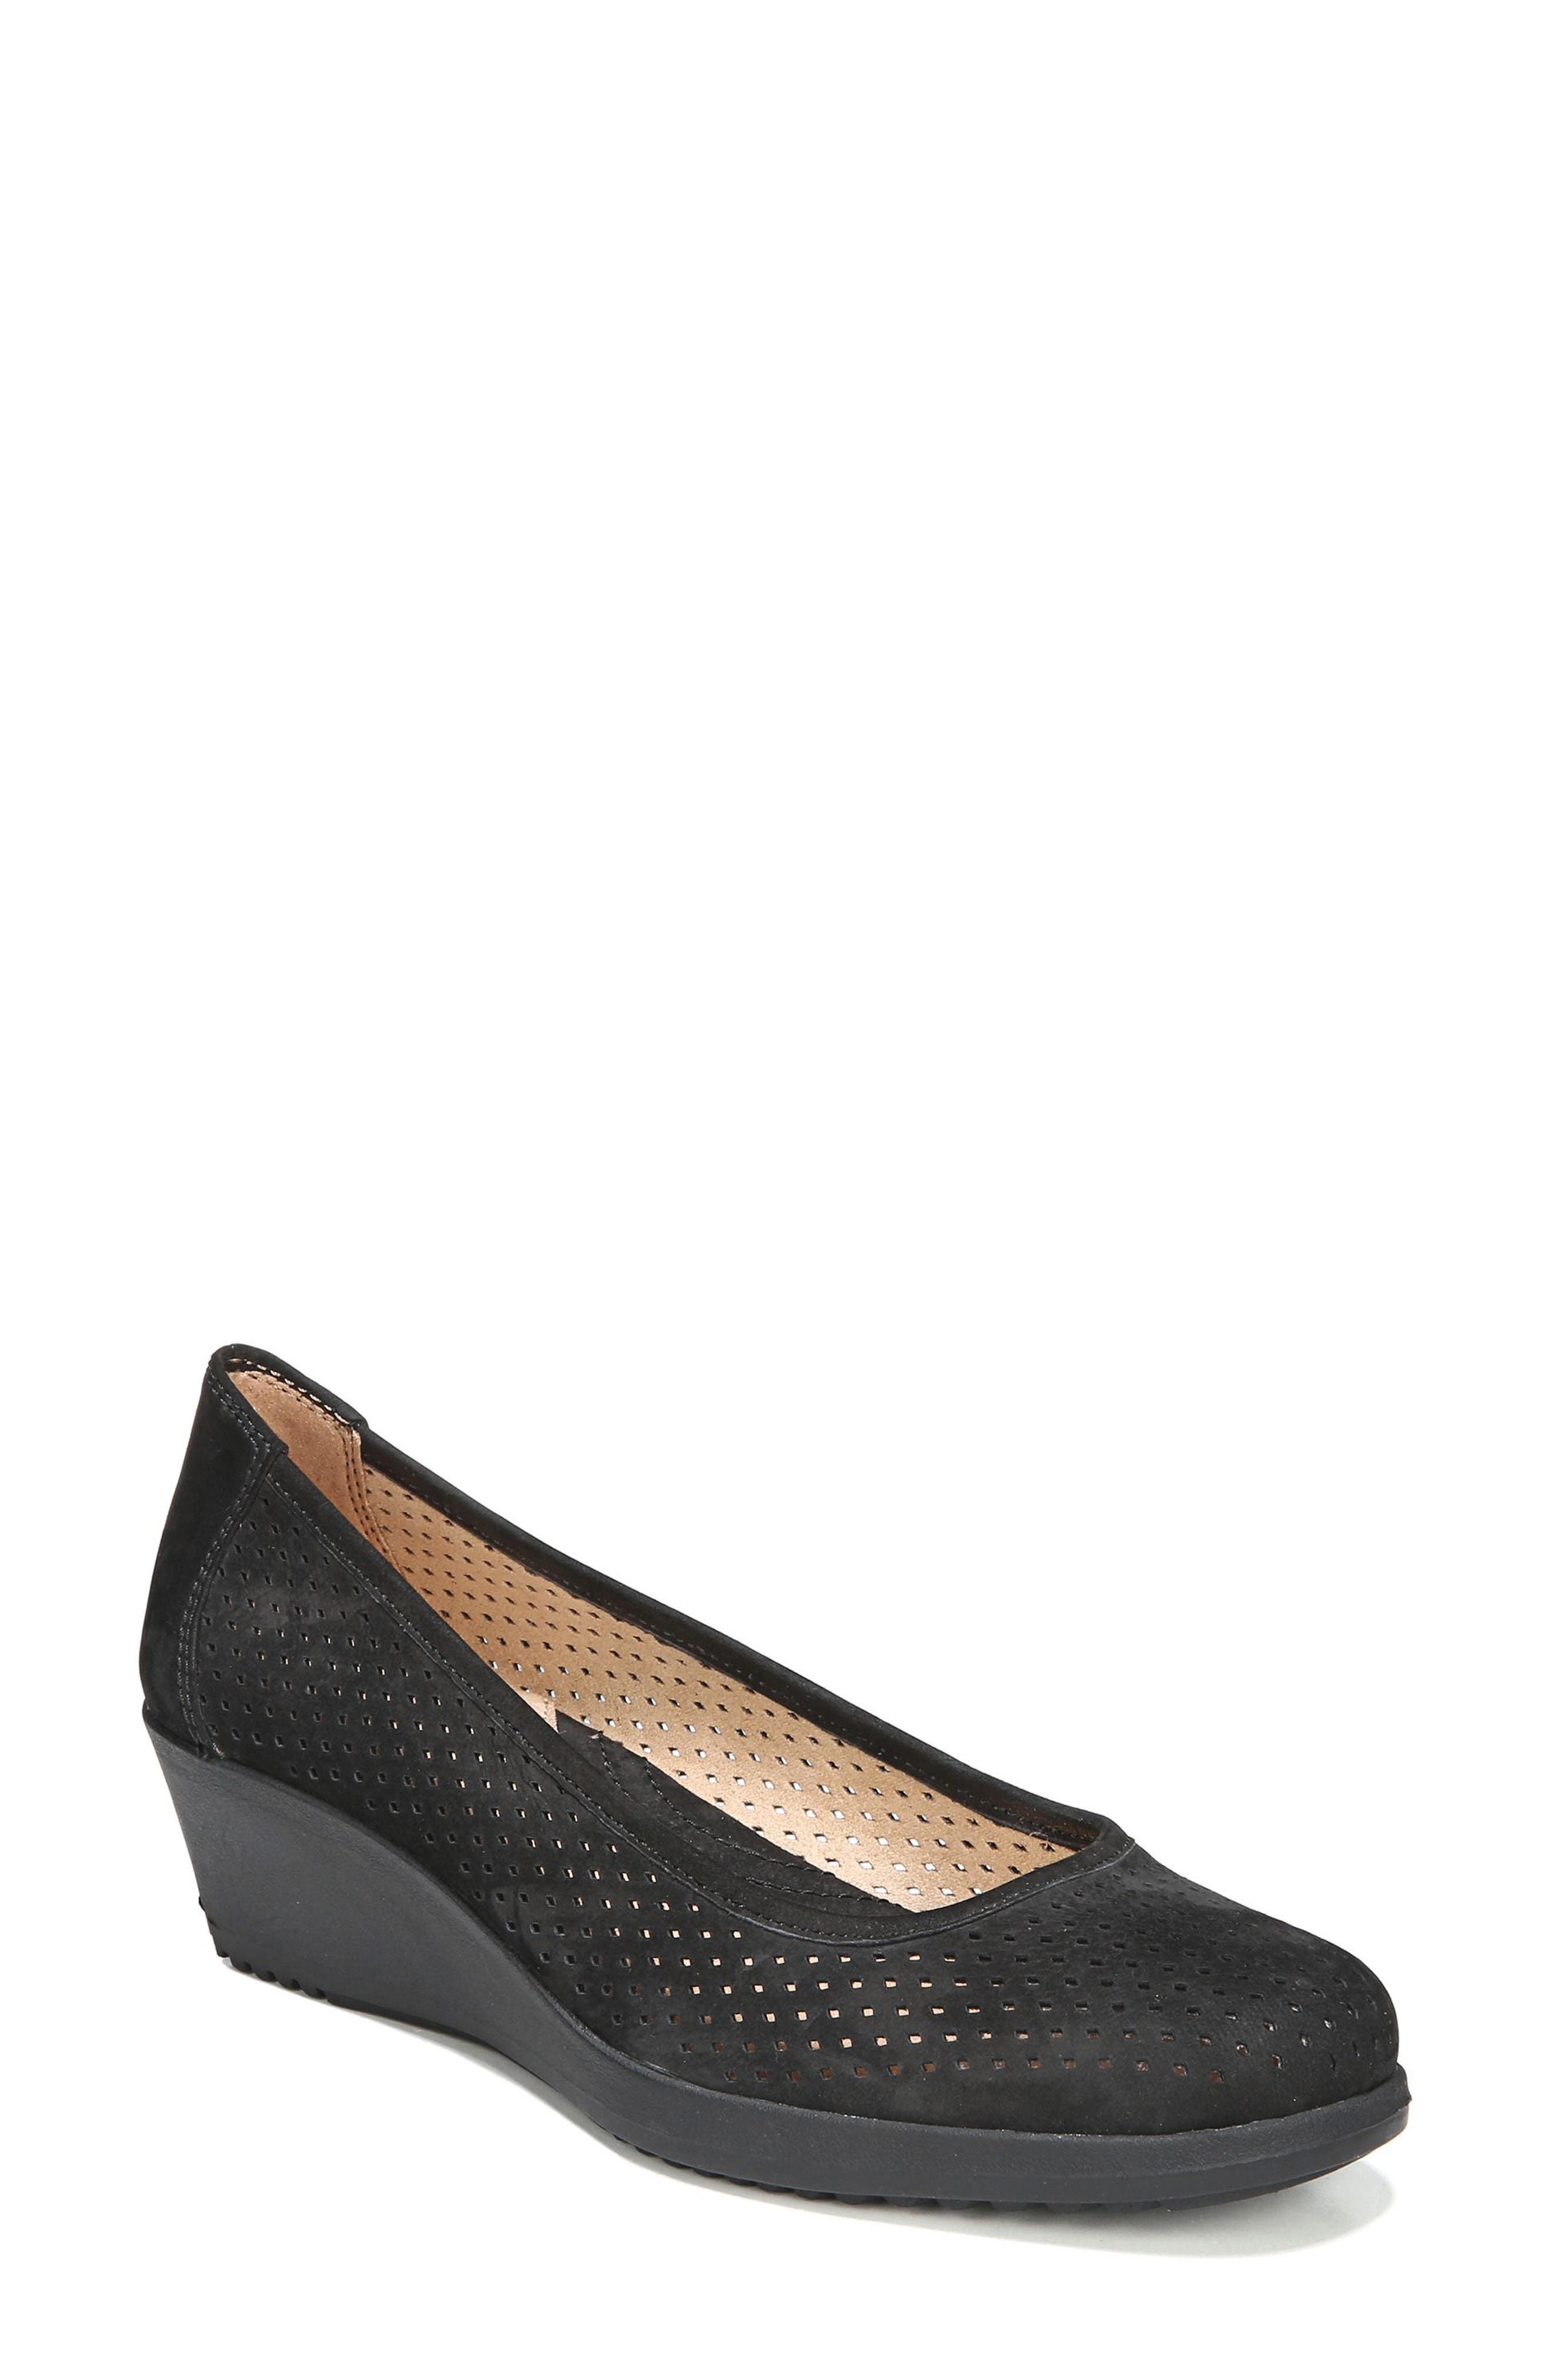 Naturalizer Betina Ii Wedge N - Black